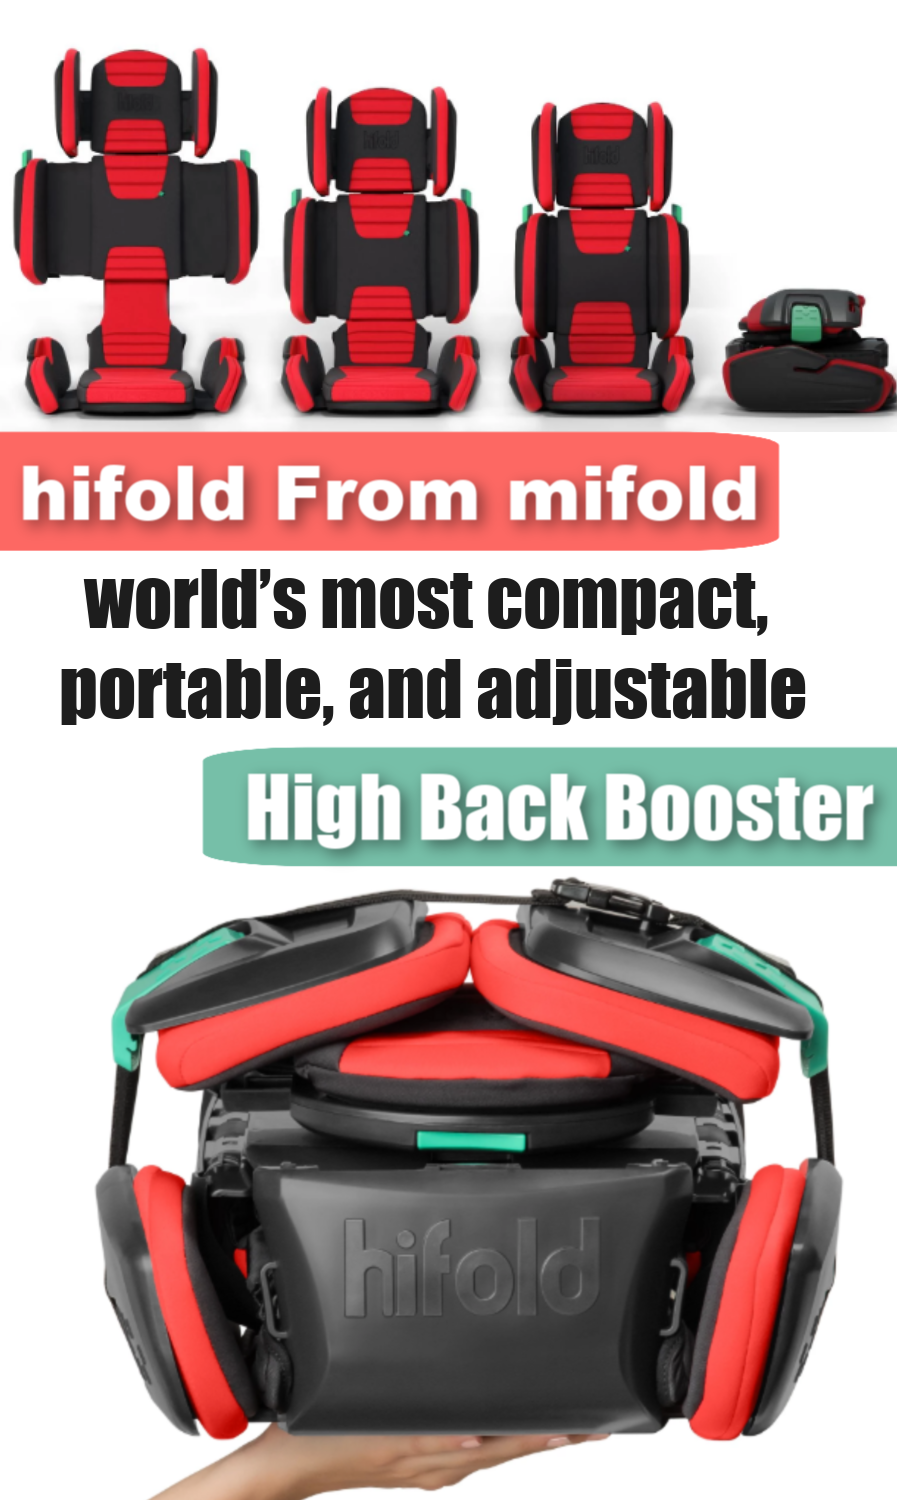 hifold Booster Review - The Fit And Fold Booster You Can Take With You! 3 - world's most compact, portable, and adjustable